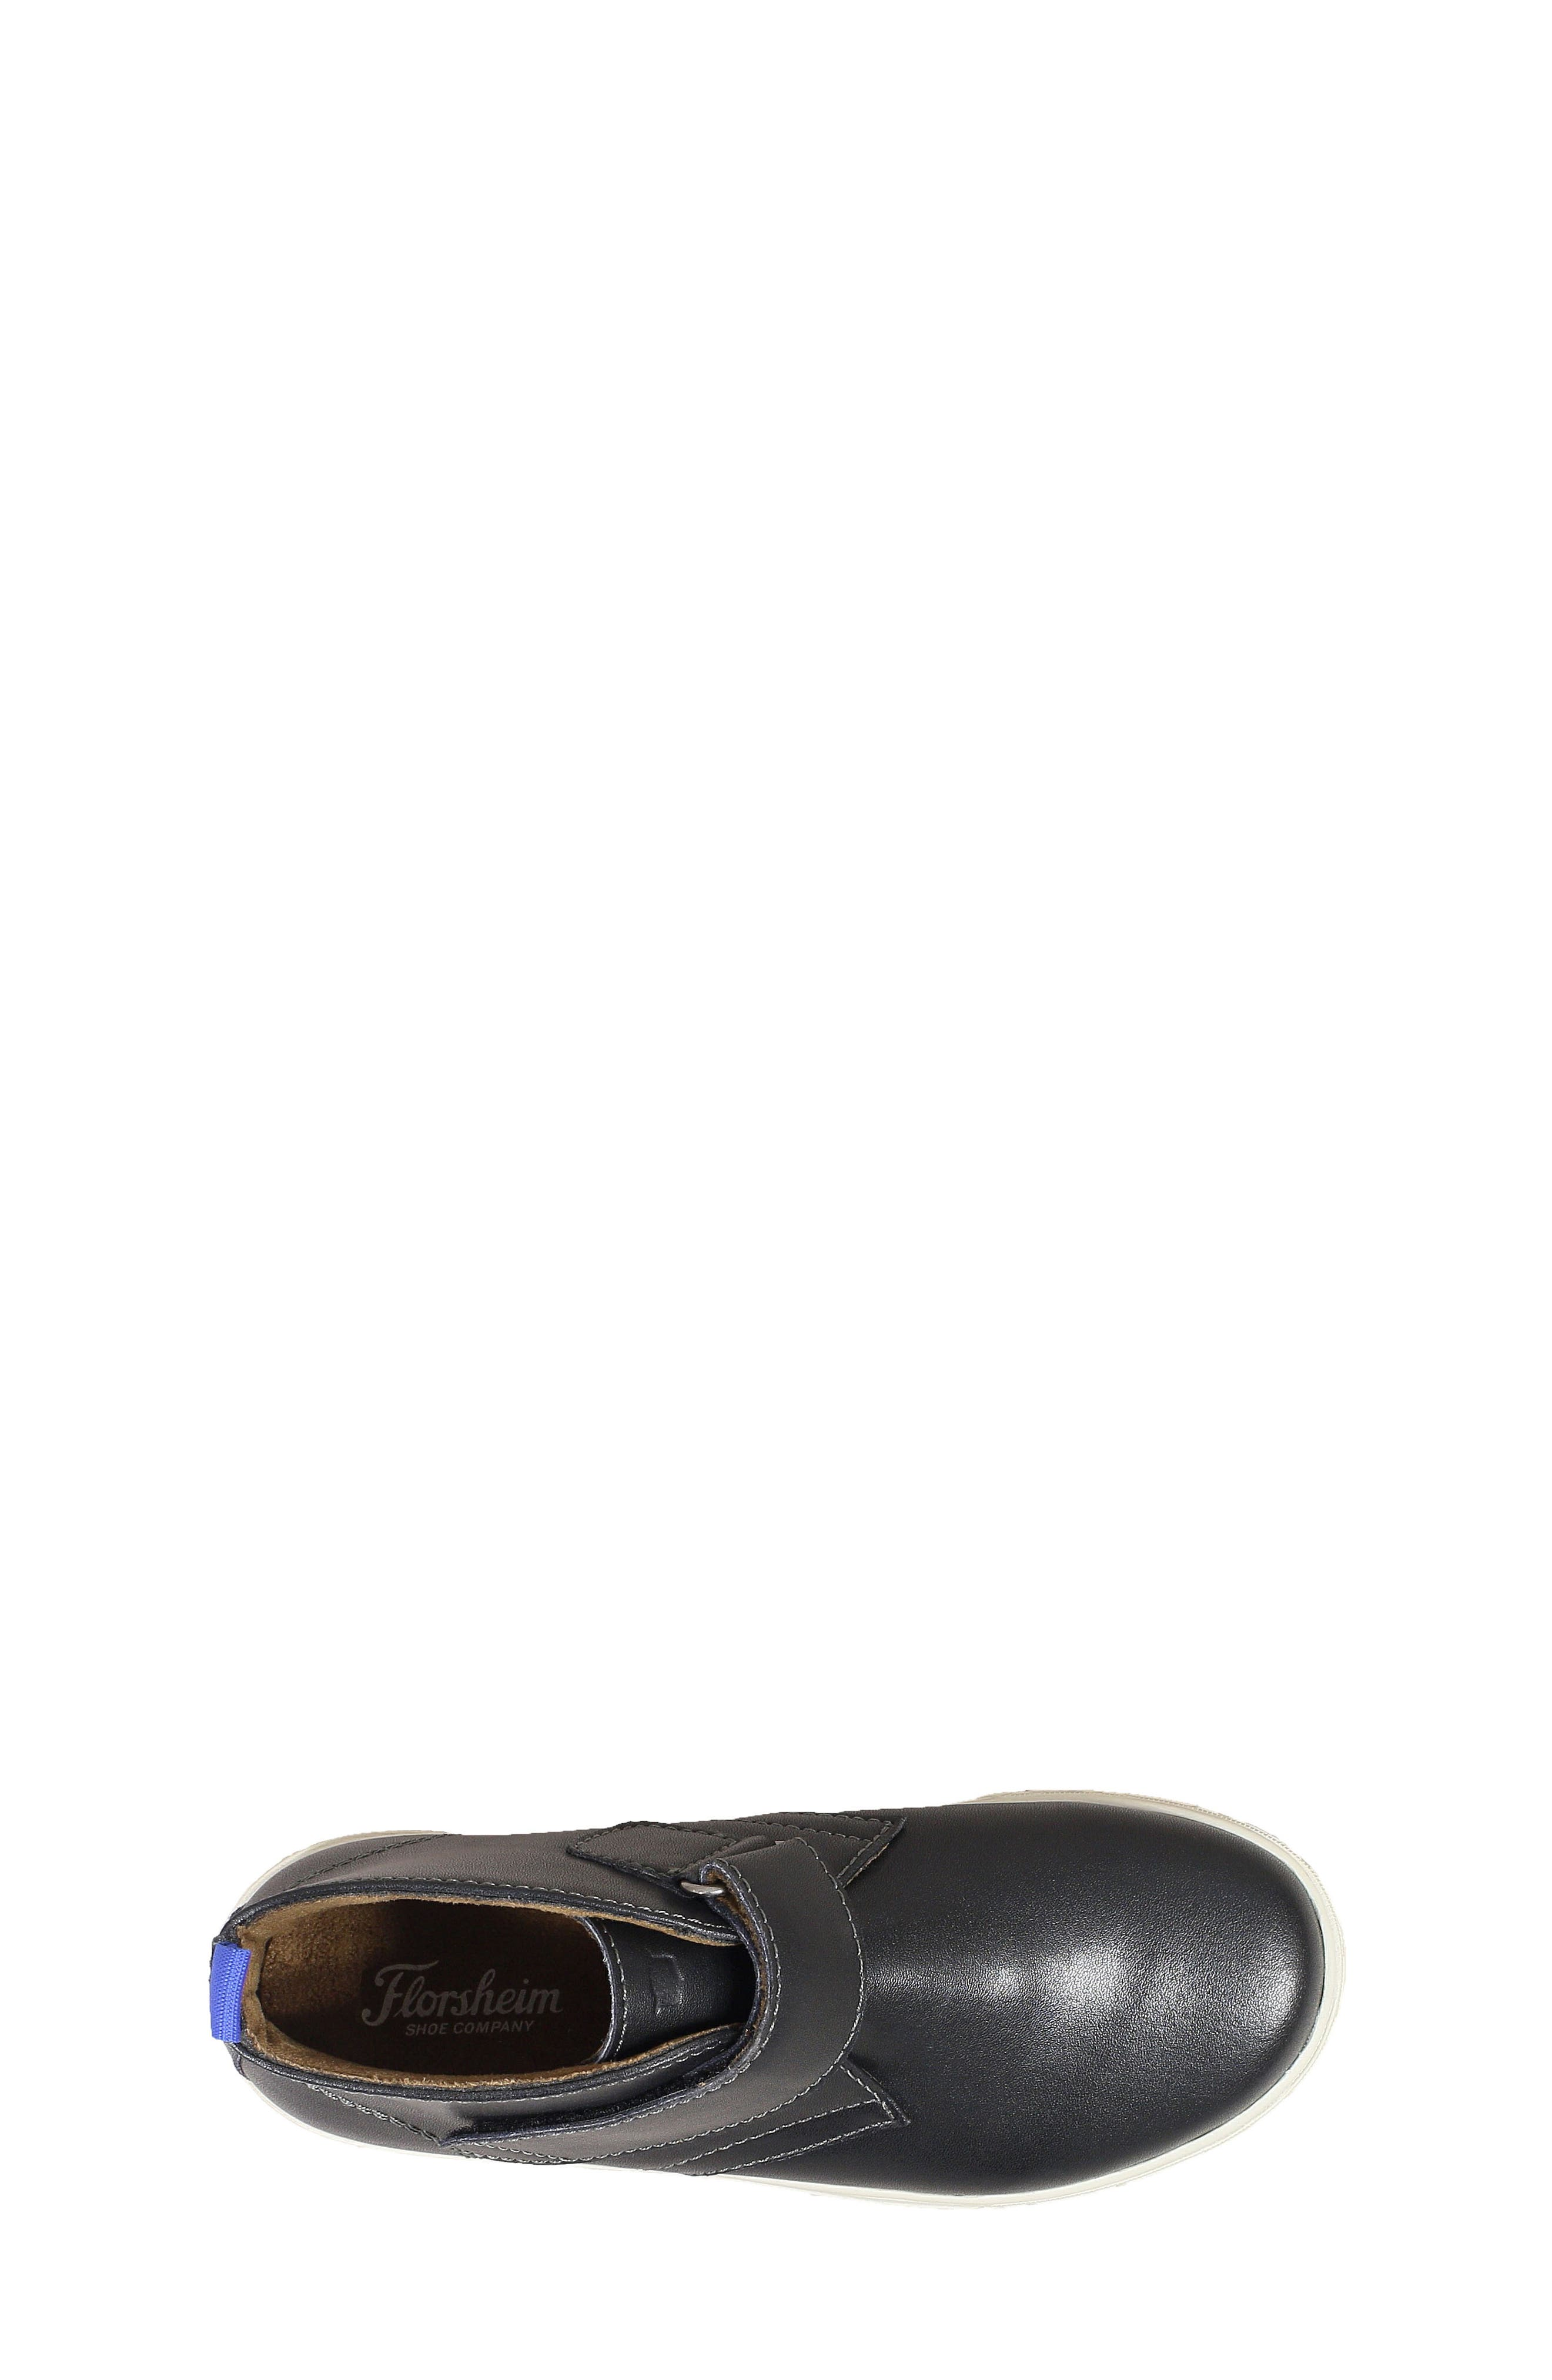 FLORSHEIM, Curb Chukka Boot, Alternate thumbnail 4, color, BLACK LEATHER